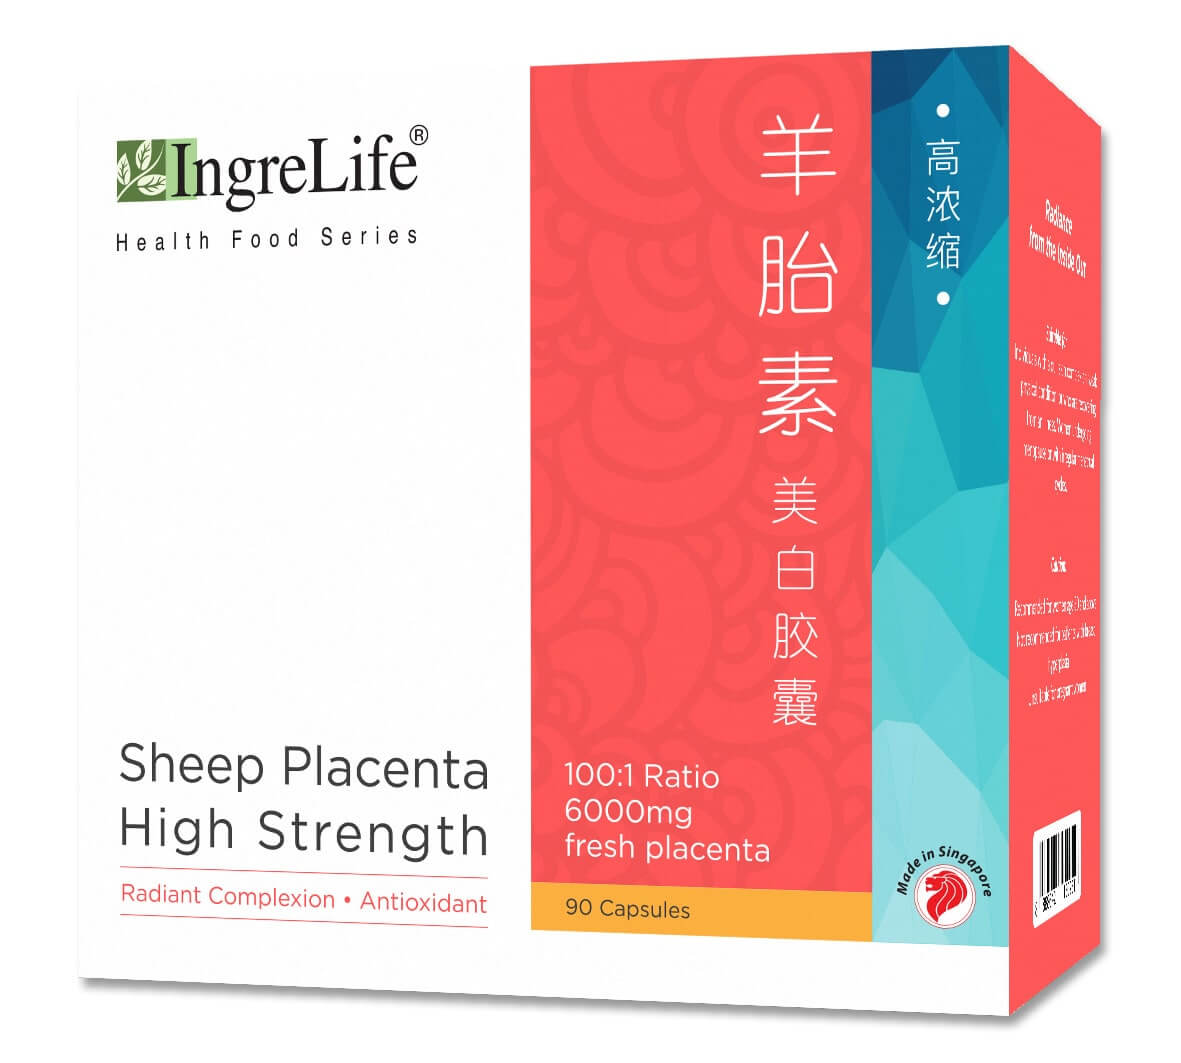 Sheep Placenta High Strength (90 Capsules)